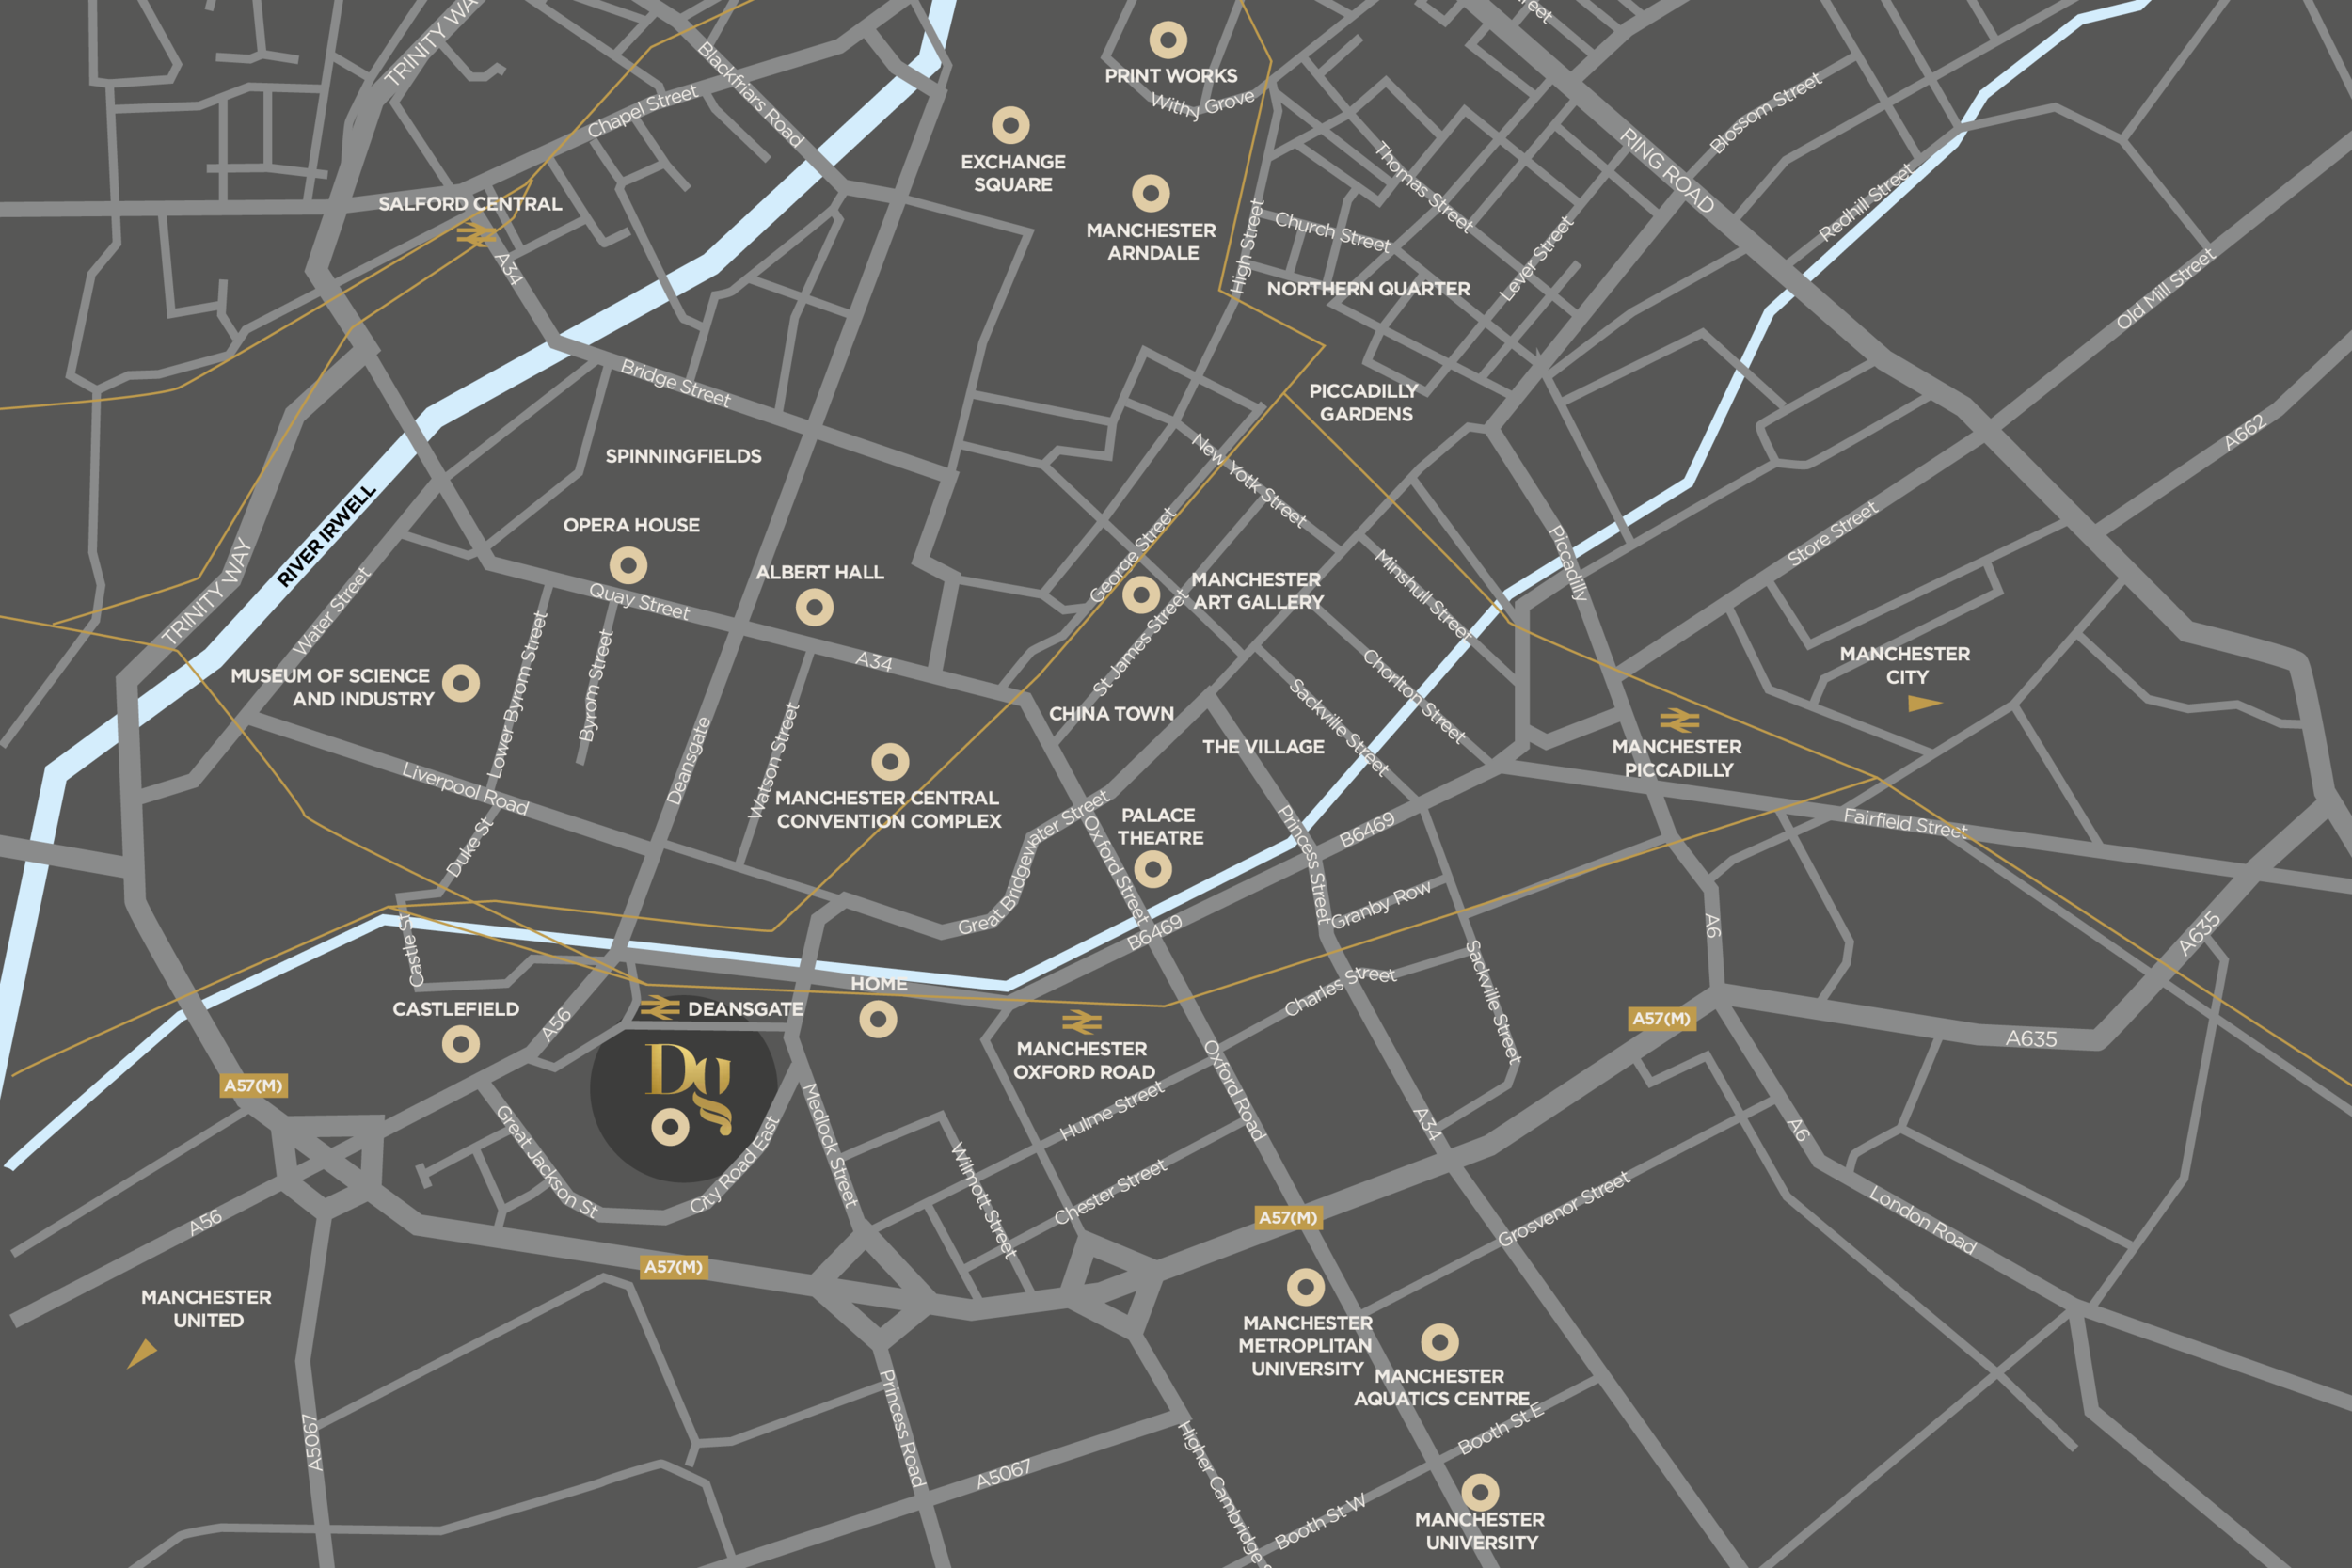 deansgate_square_manchester_map.png